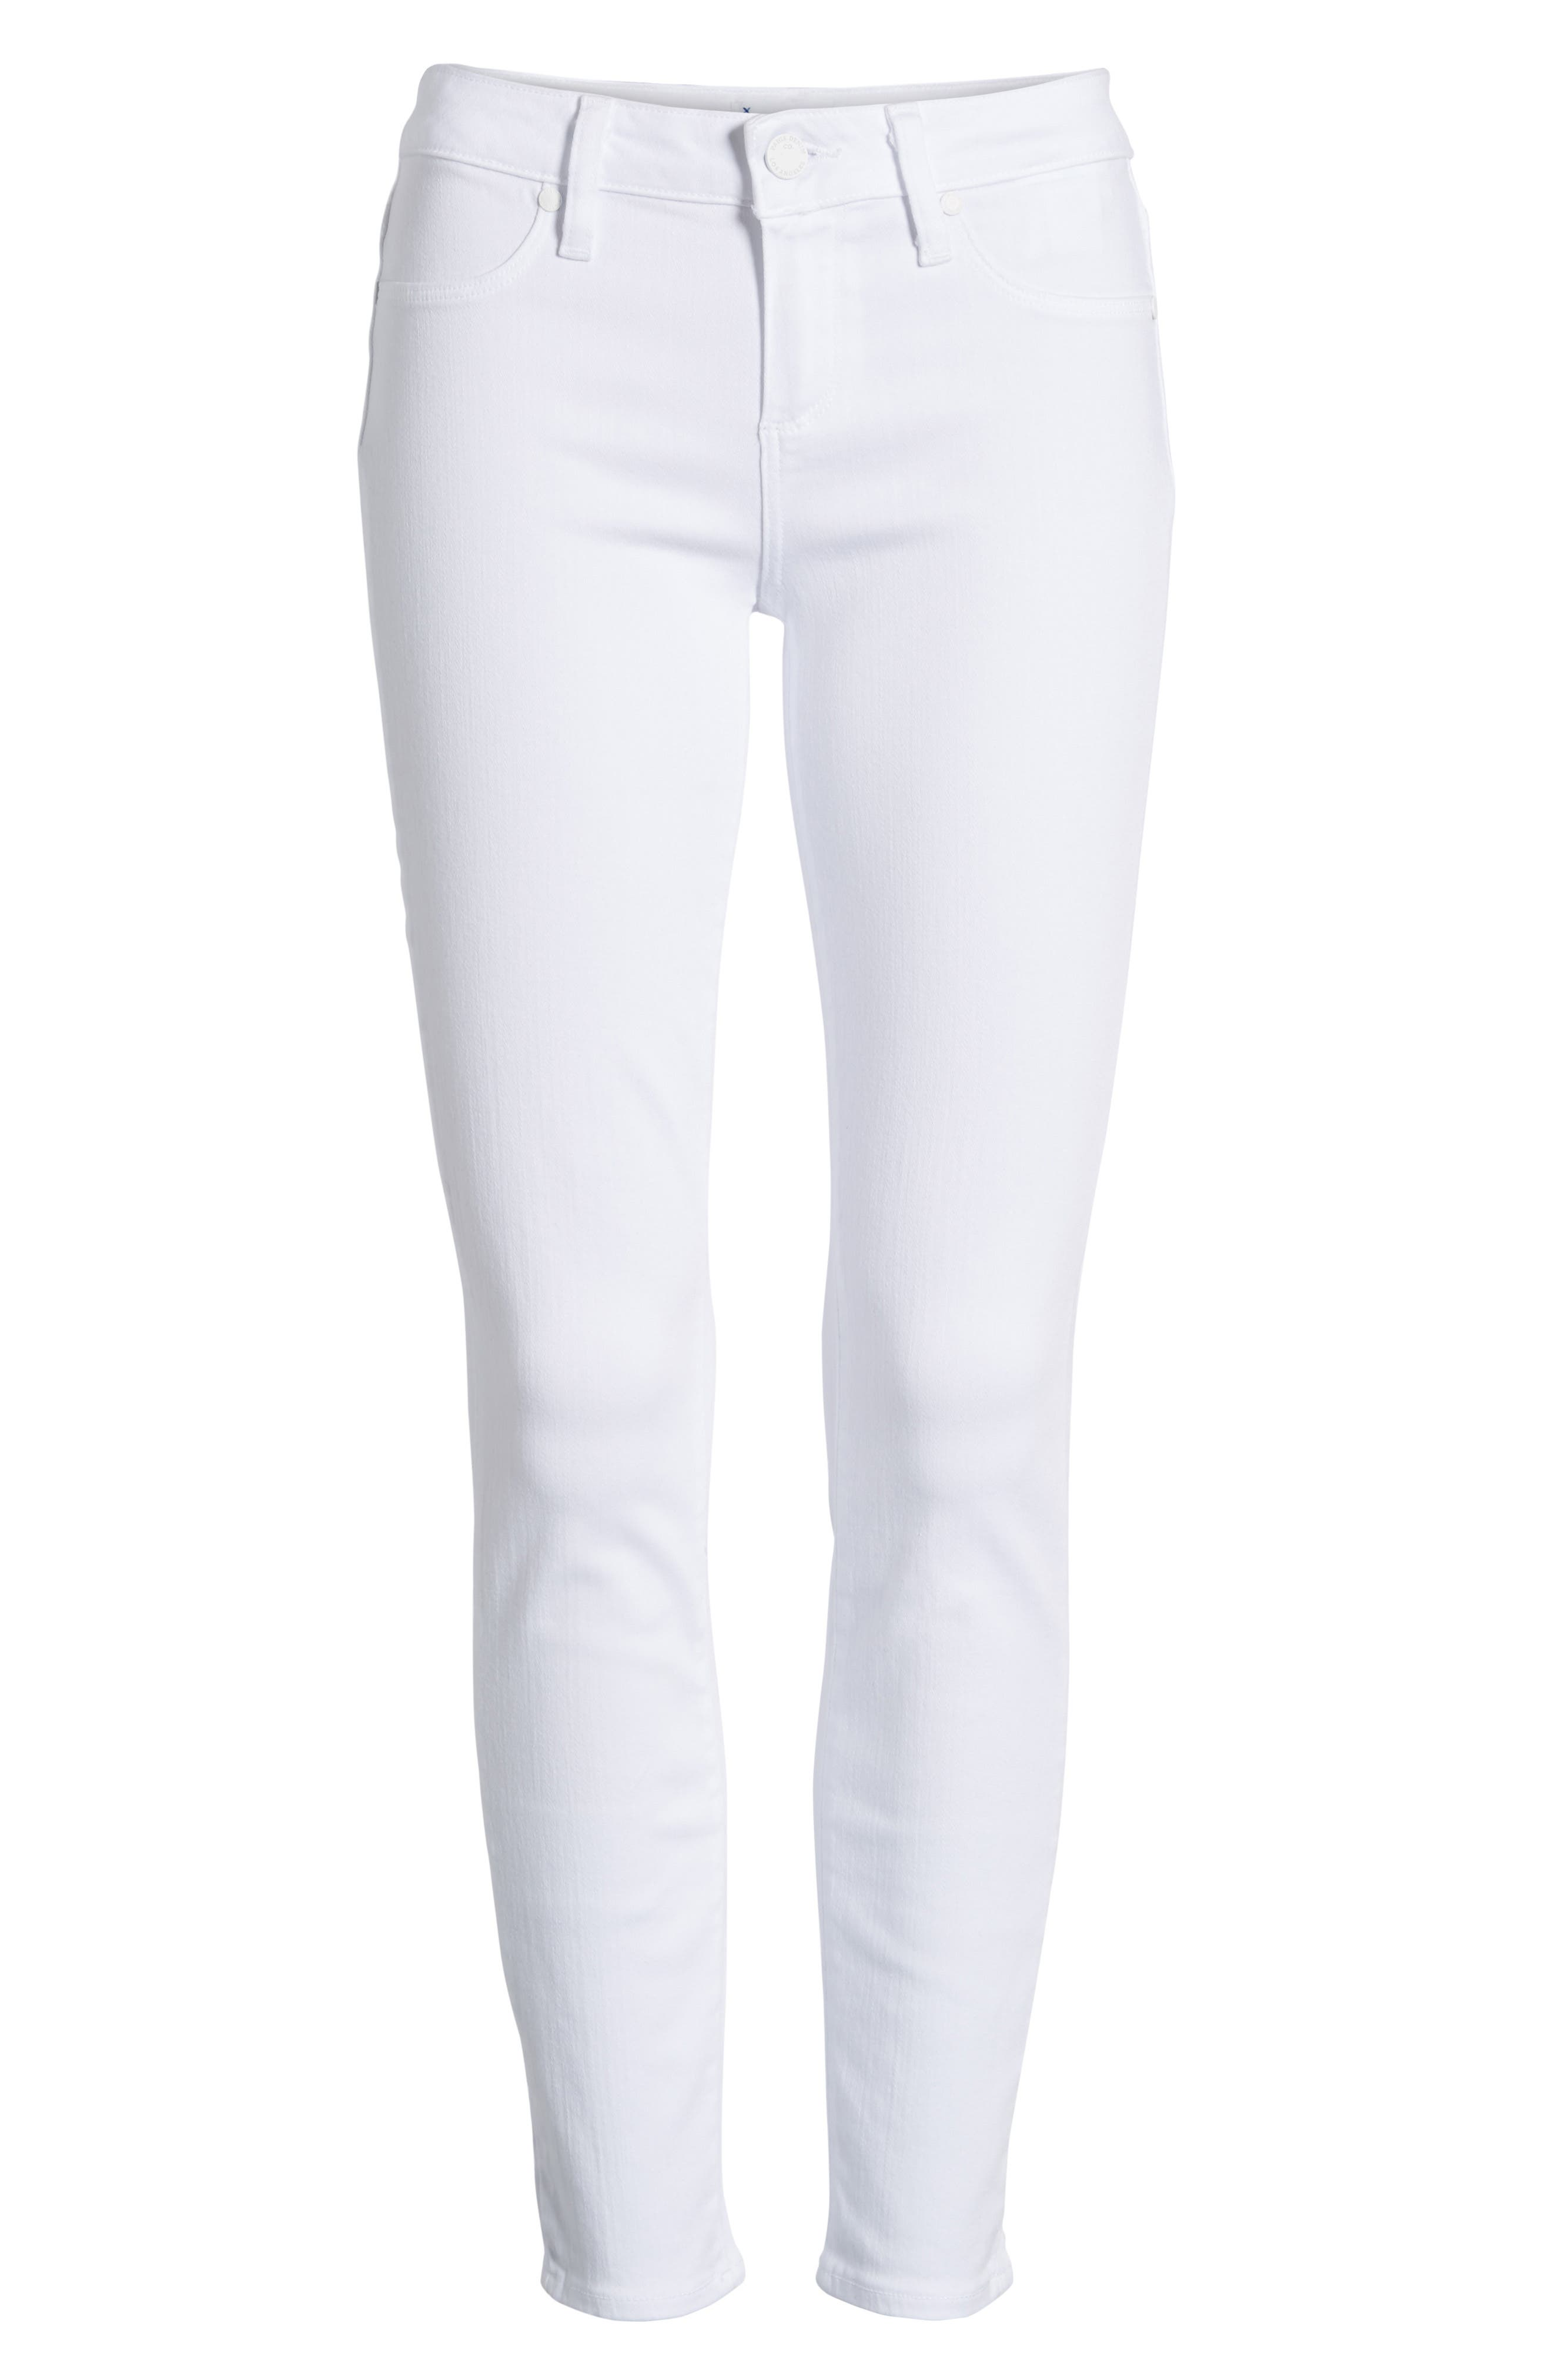 'Verdugo' Ankle Skinny Jeans,                             Main thumbnail 1, color,                             ULTRA WHITE